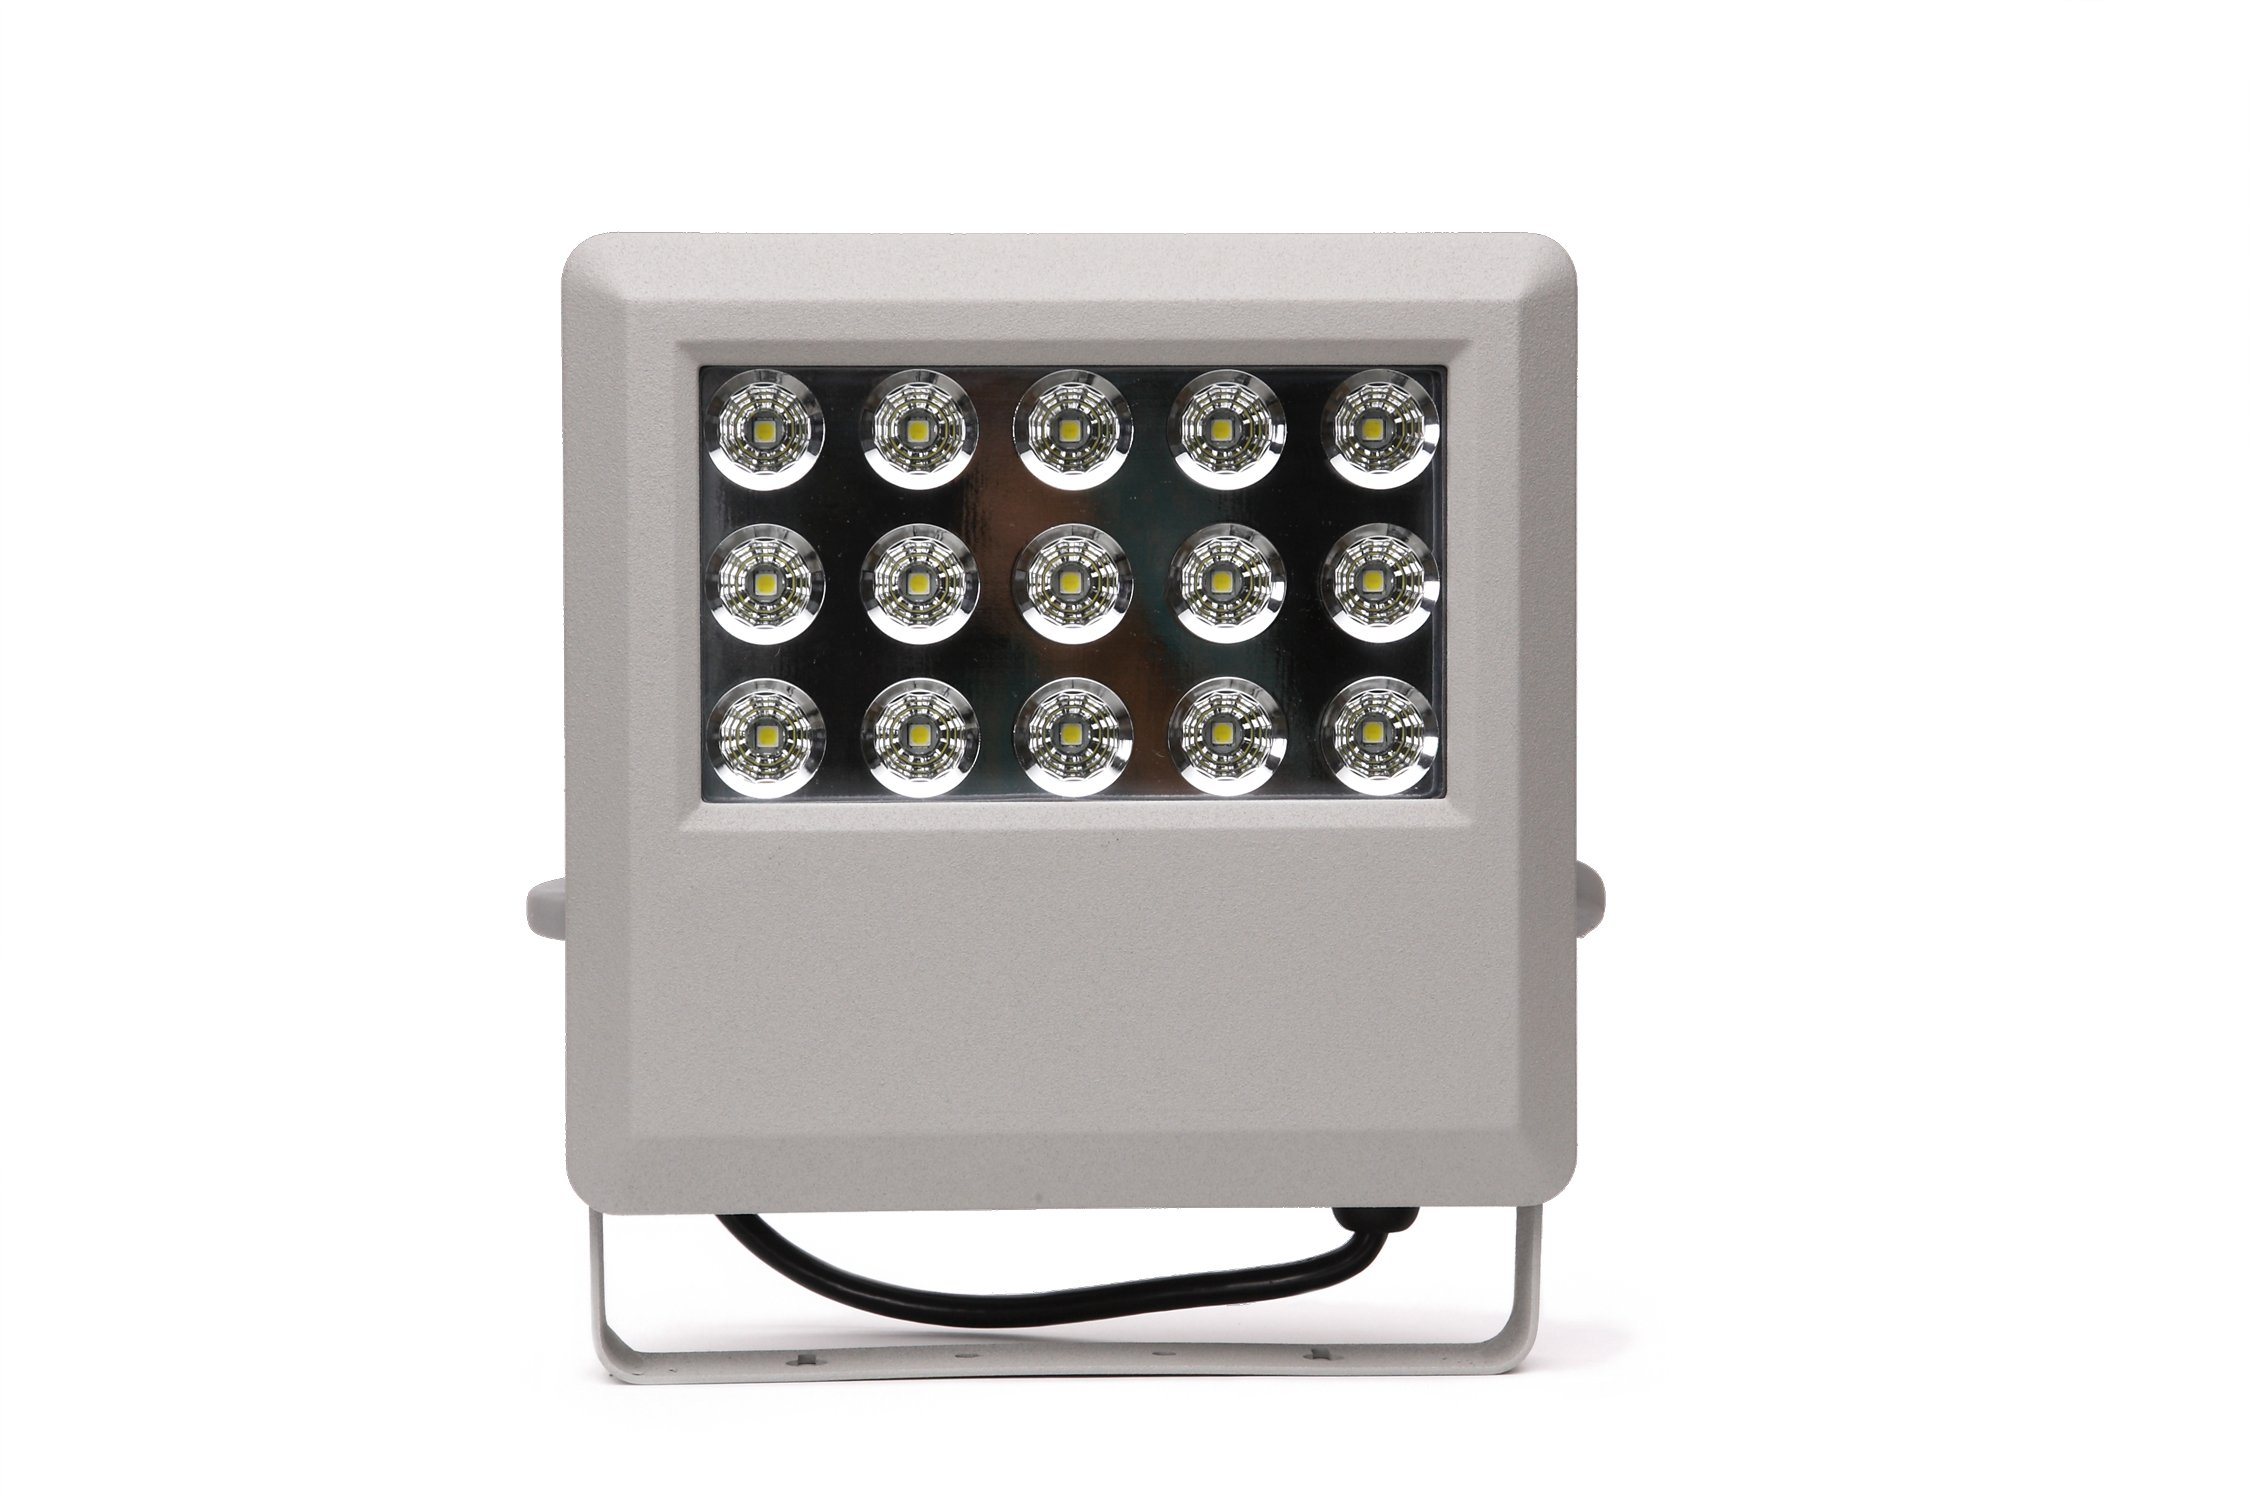 HIGH Power LED FLOODLIGHT with 15 LED Bulbs in Display/Hitec Energy Saver/PhotoCell for Dusk to Dawn illumination/IP65 Cerftified Great for Outdoor